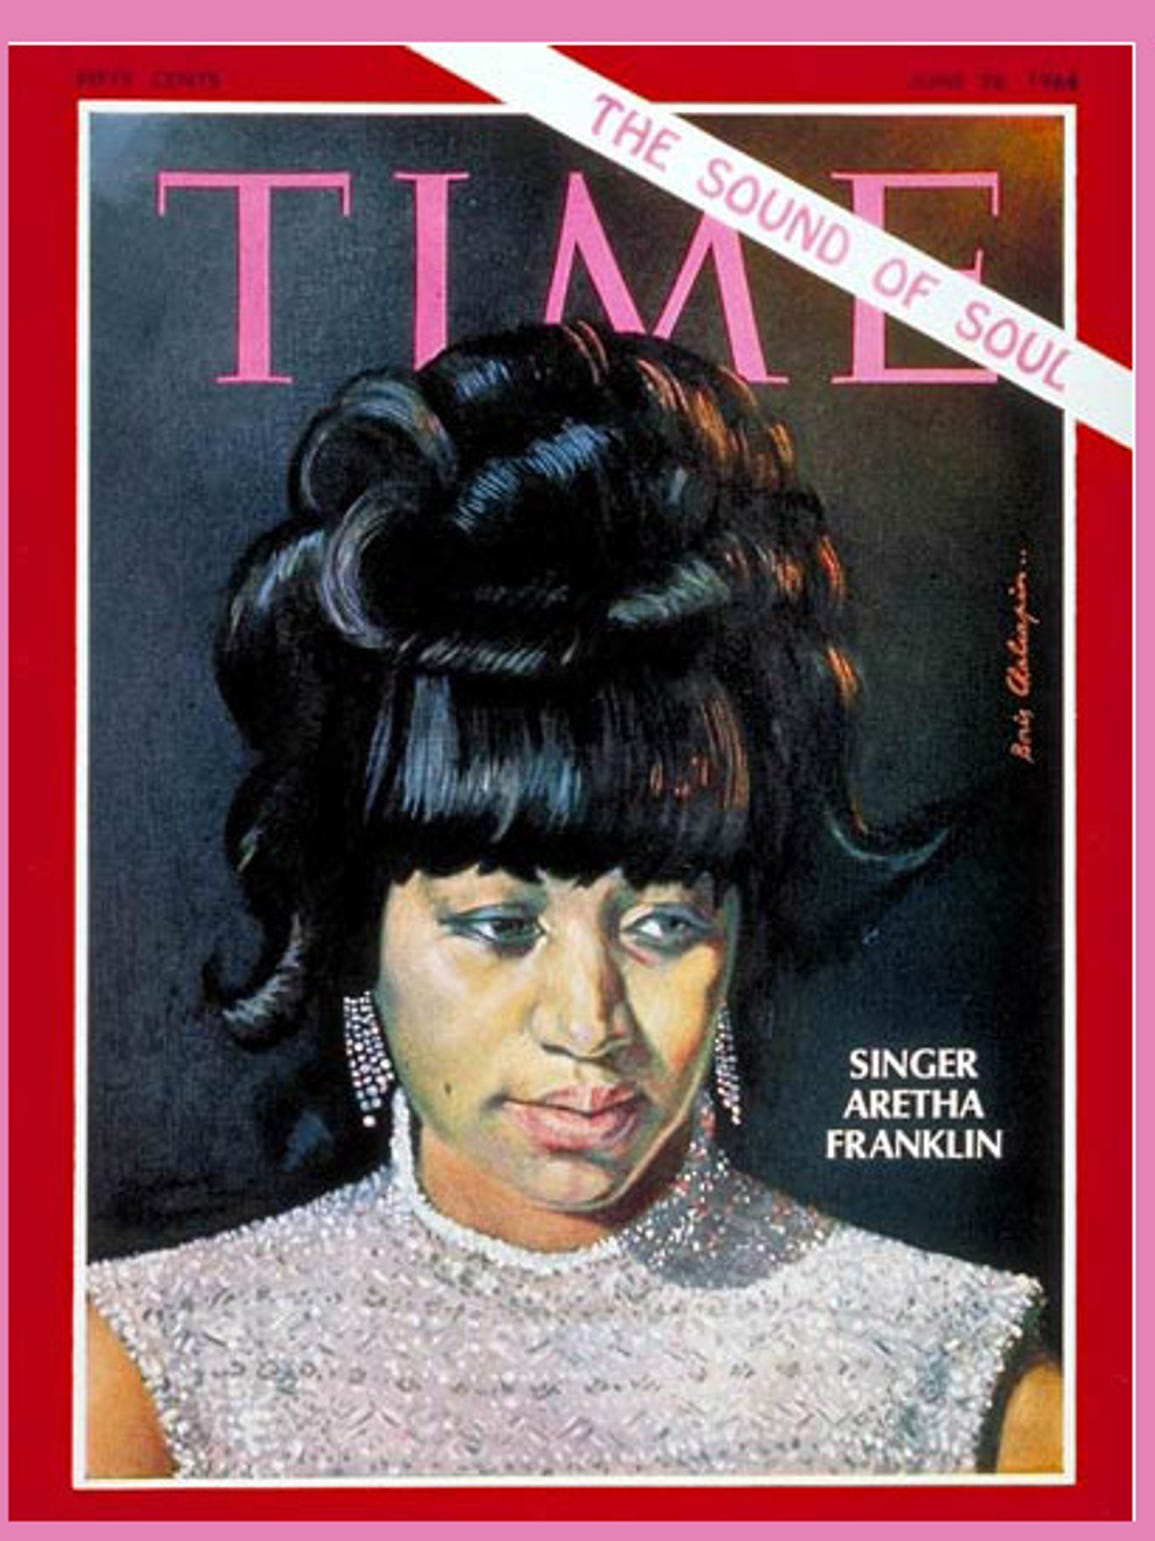 Aretha Franklin on the cover of Time magazine, June